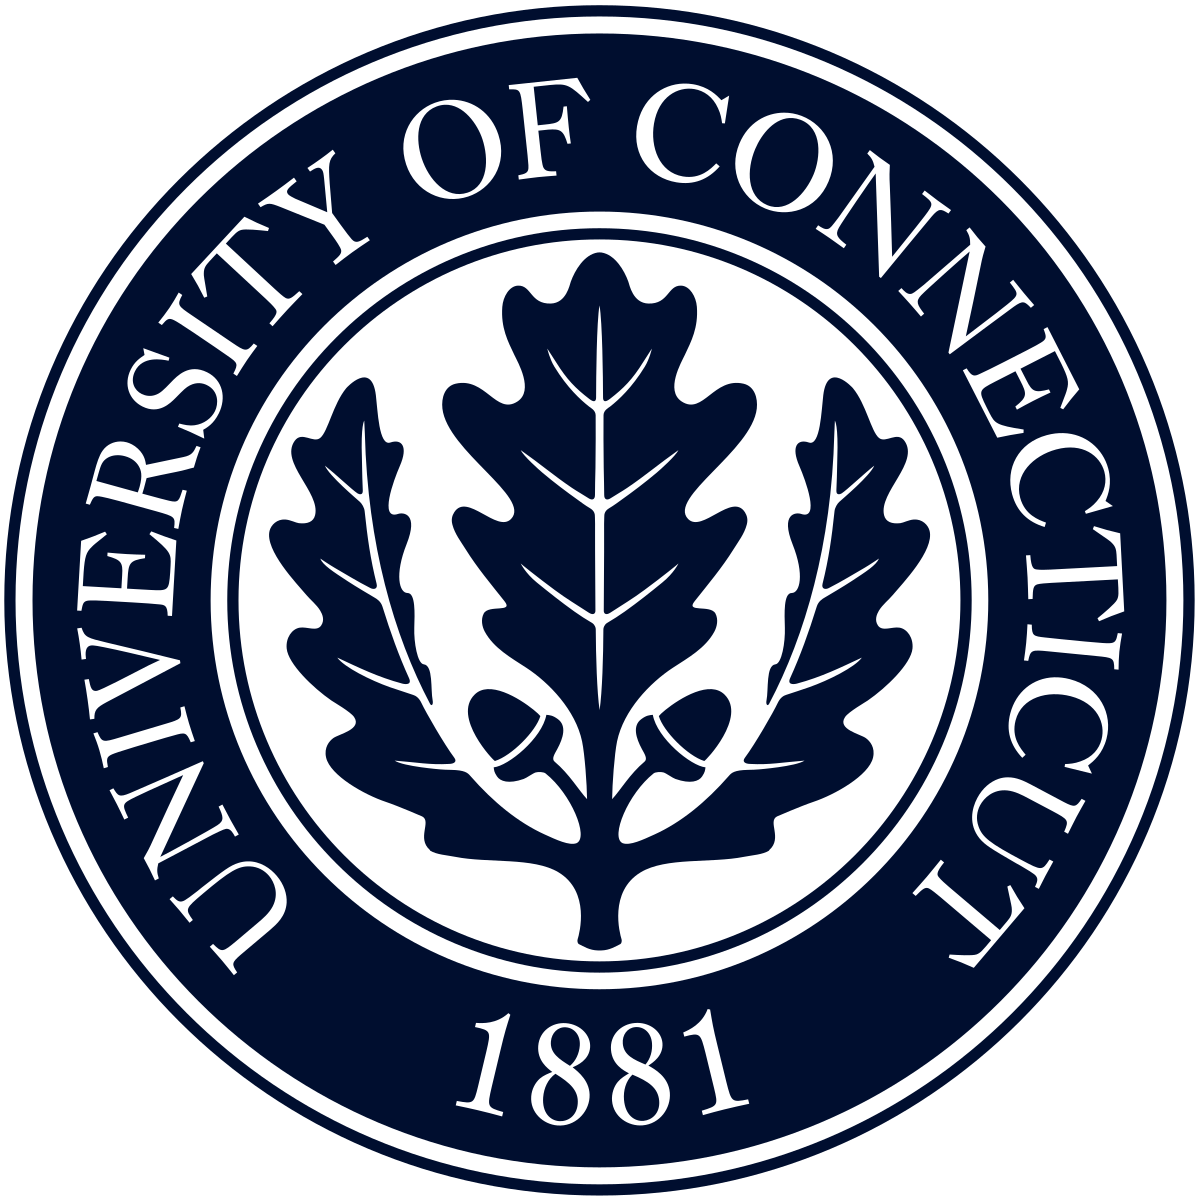 Husky svg uconn. University of connecticut wikipedia